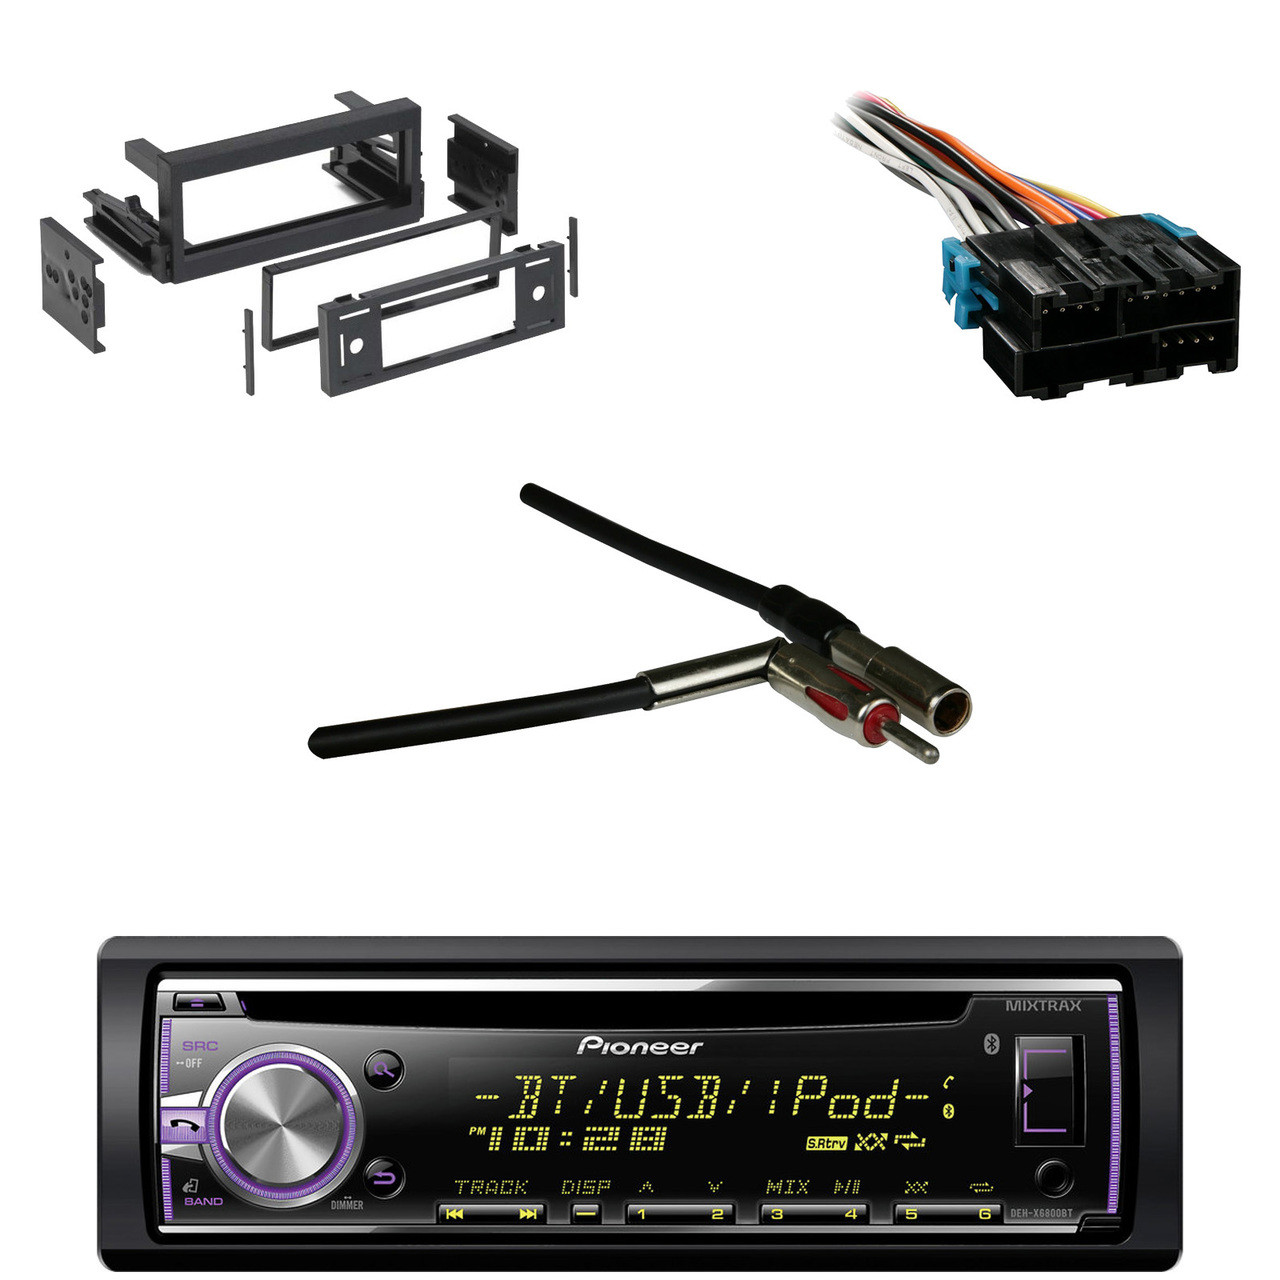 bluetooth pioneer cd car receiver gm wire harness antenna adapter metra din kit road entertainment [ 1280 x 1280 Pixel ]